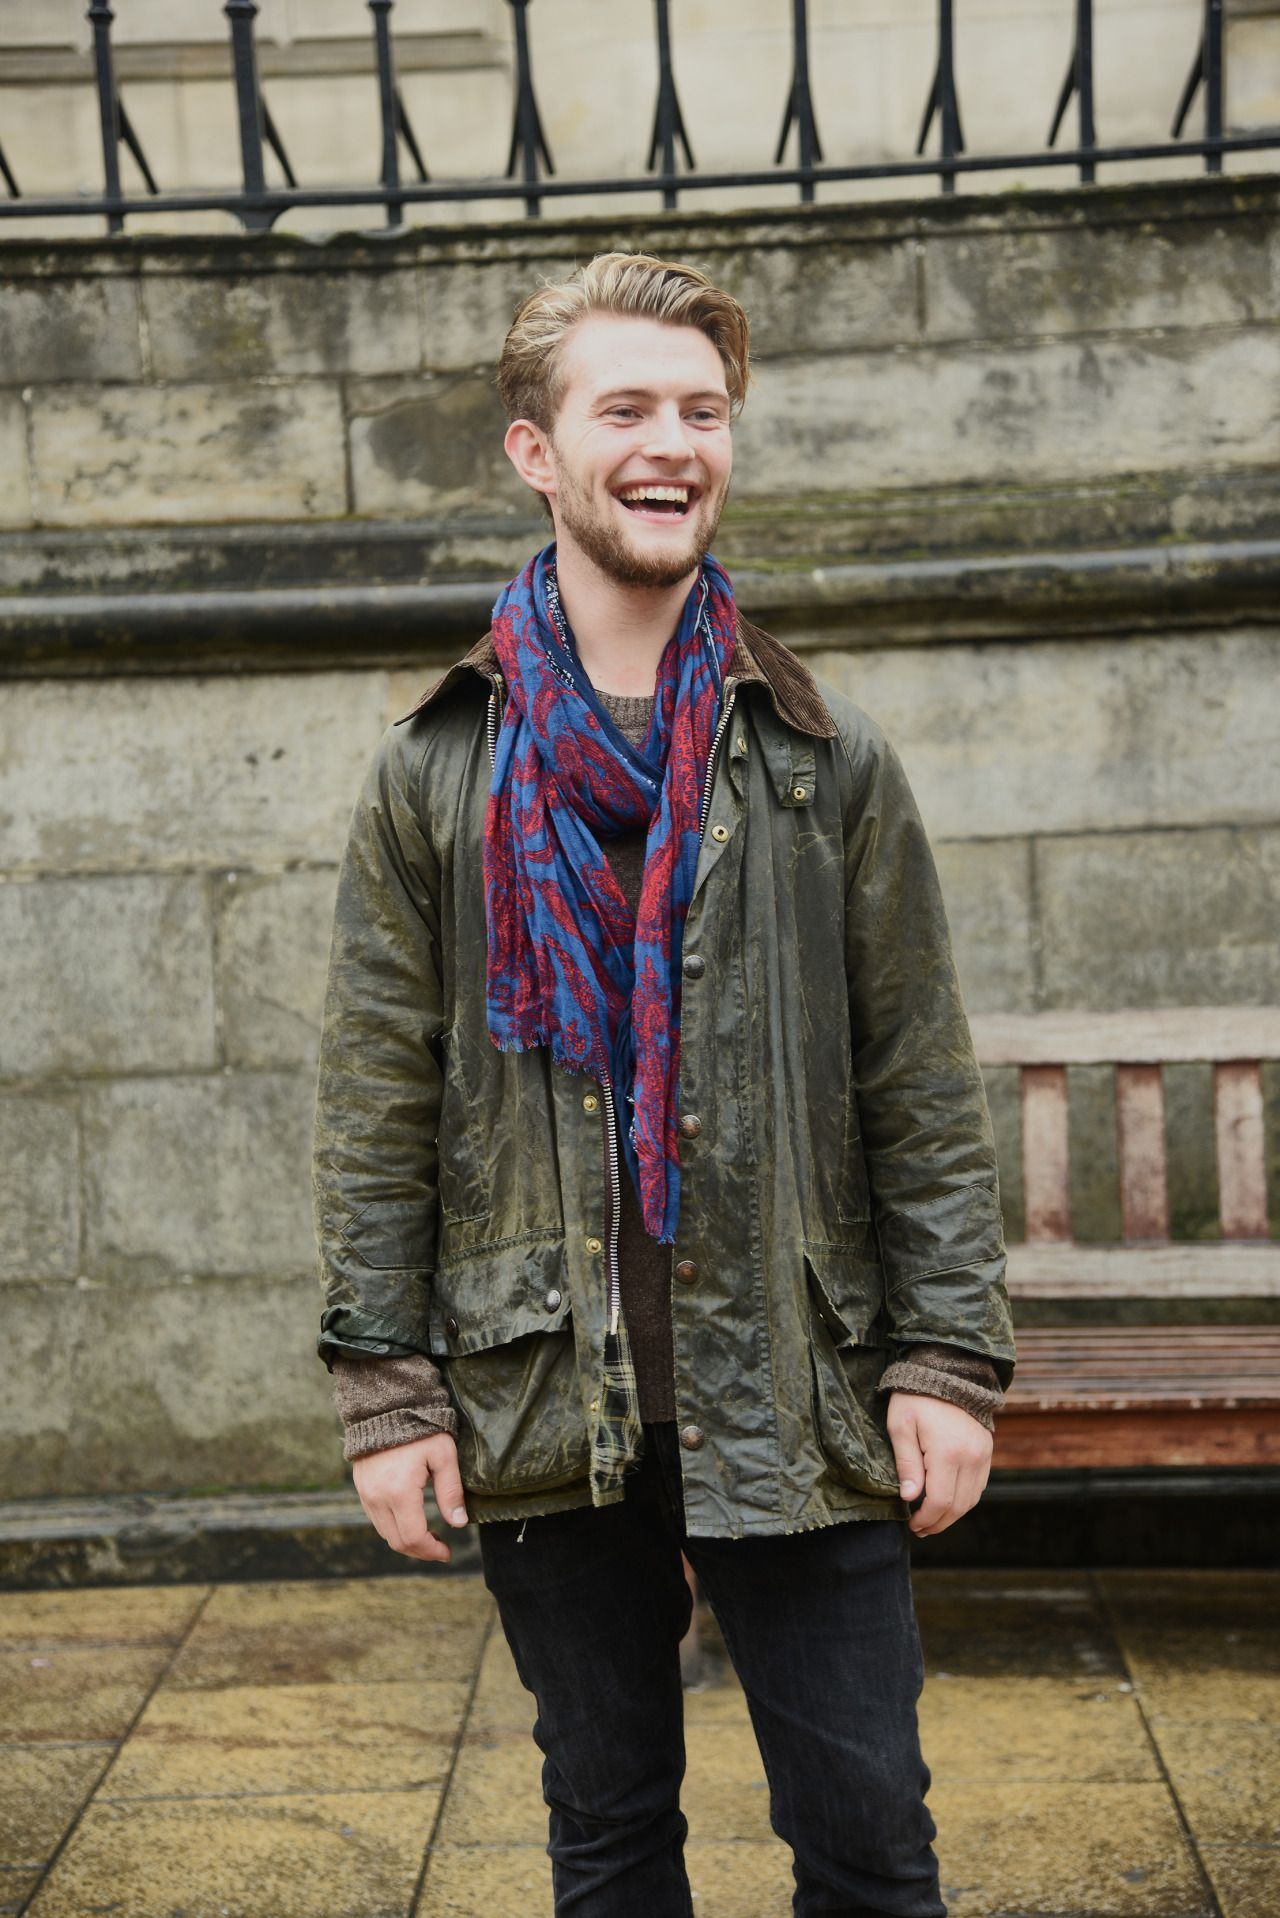 Barbour People — We bumped into Geir on the streets of Edinburgh...